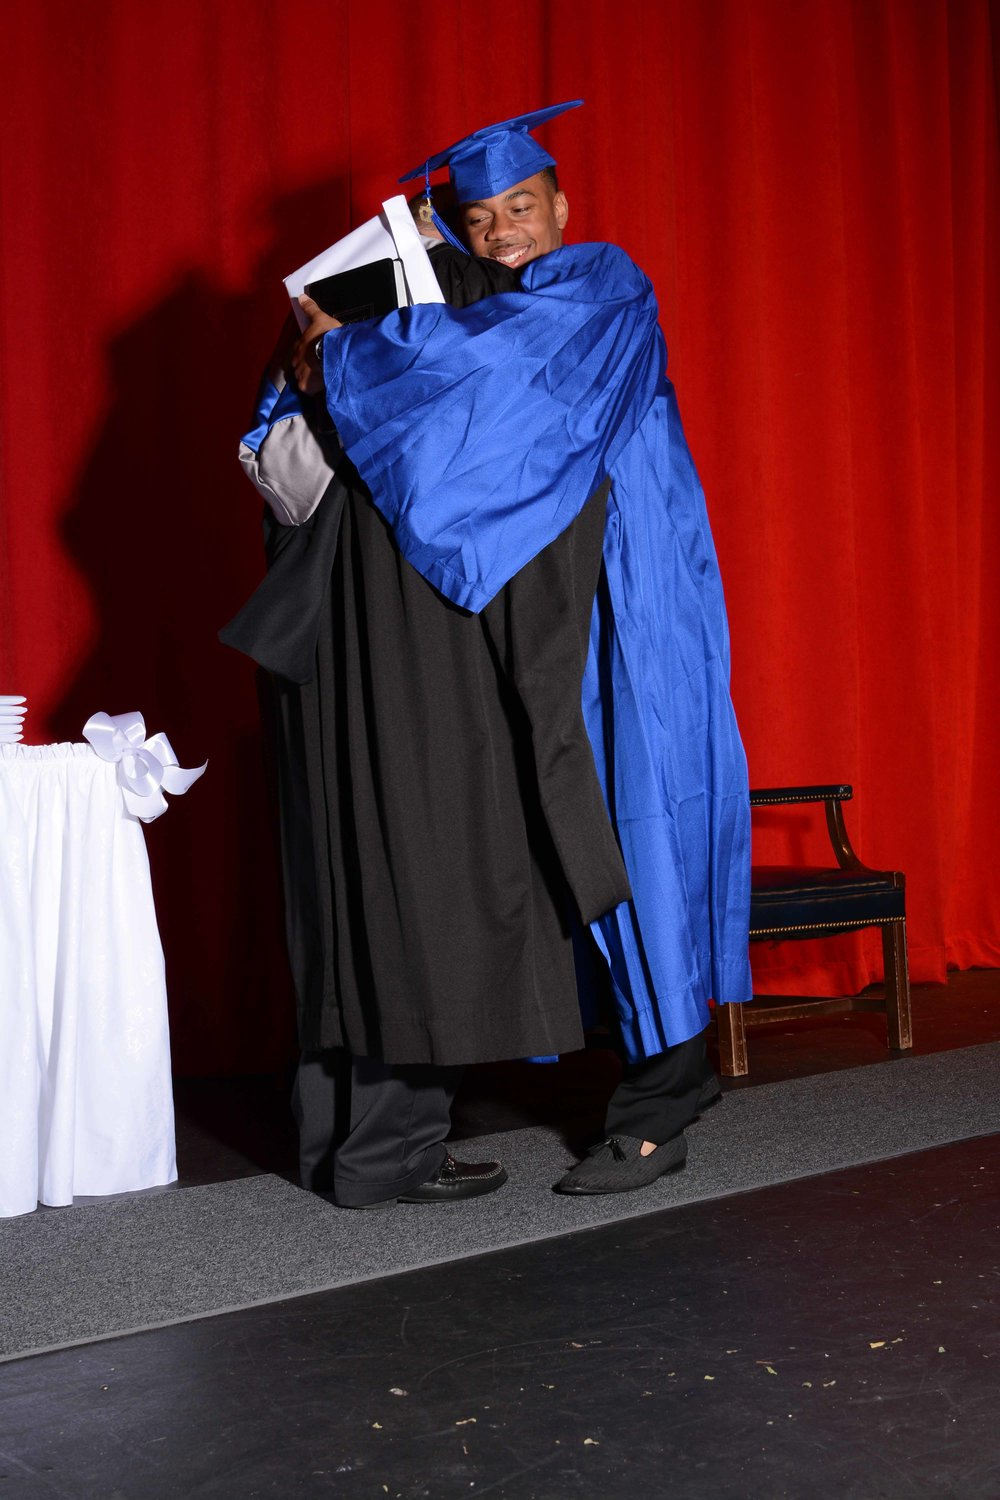 May15 HardingGraduation158.jpg